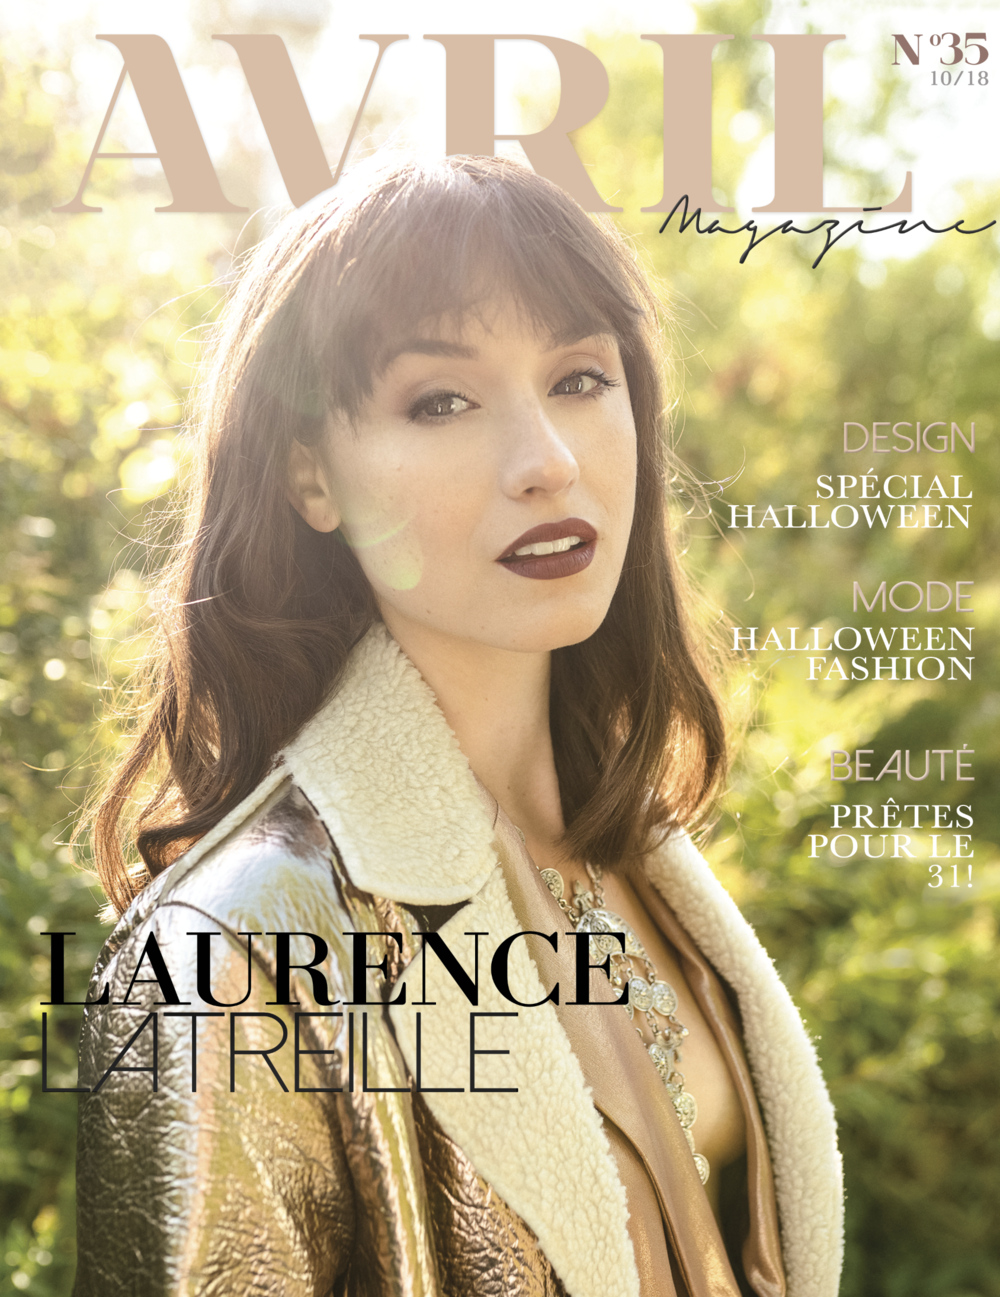 Laurence_Latreille_Avril Magazine_cover.png